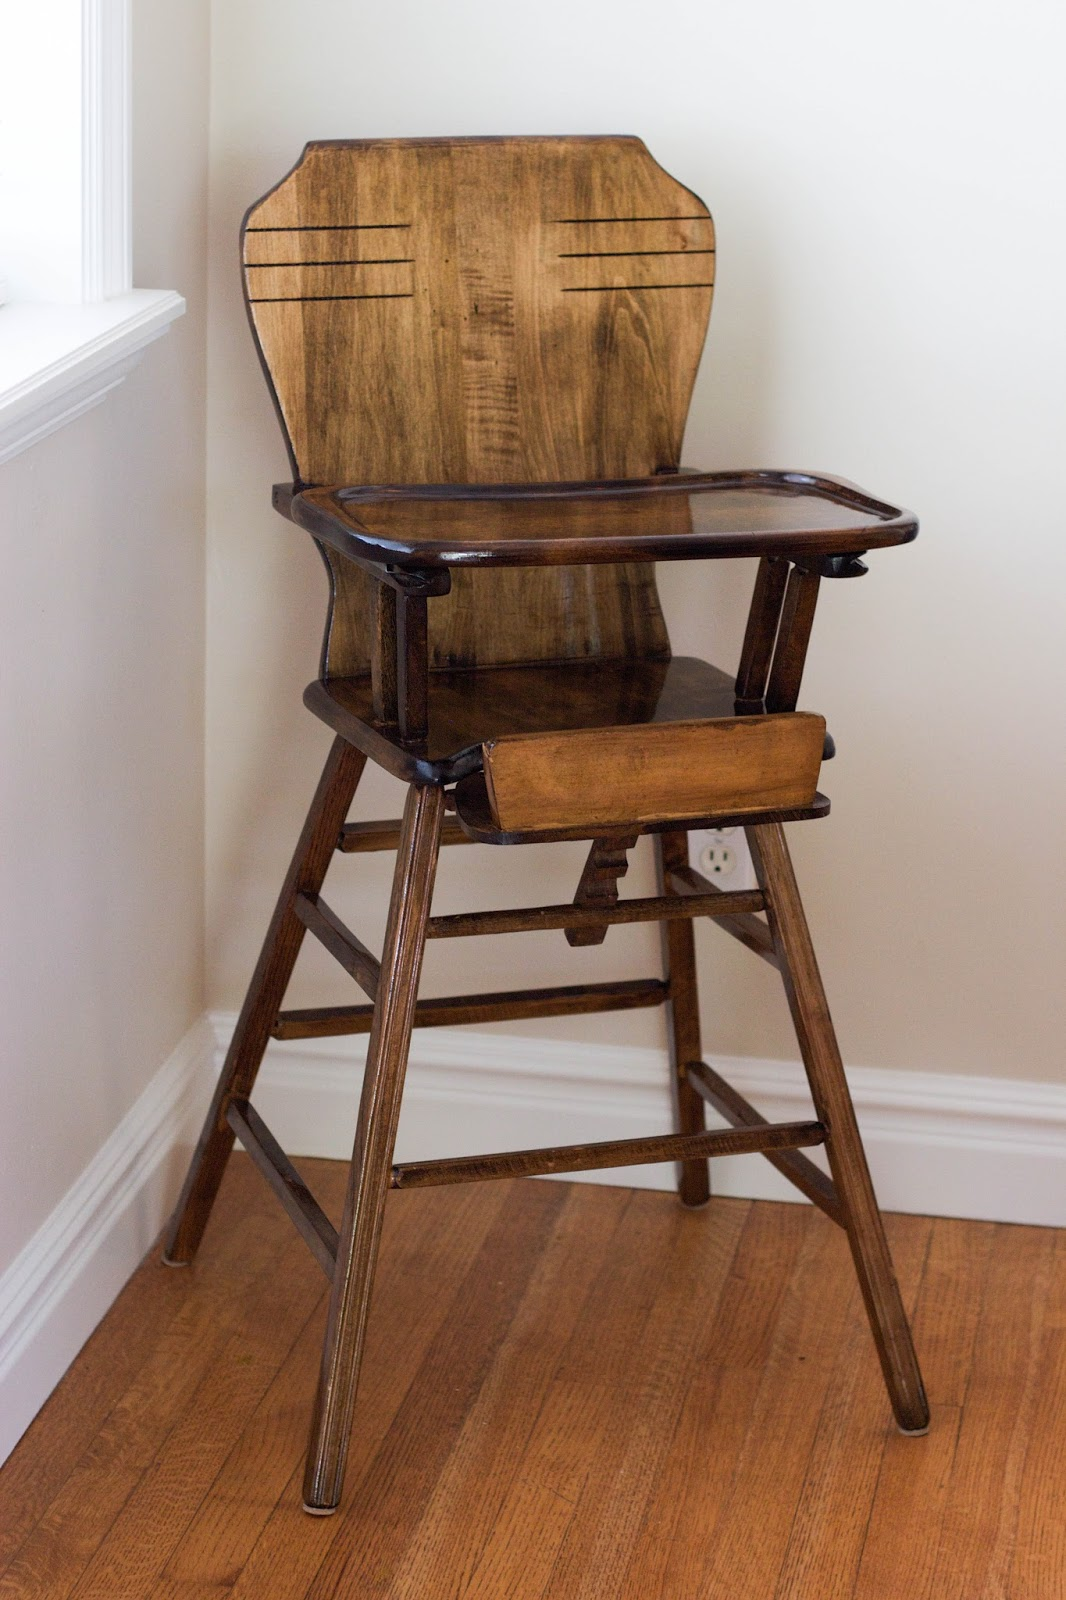 DIY: Refinish an Antique Highchair - Do It Yourself Divas: DIY: Refinish An Antique Highchair